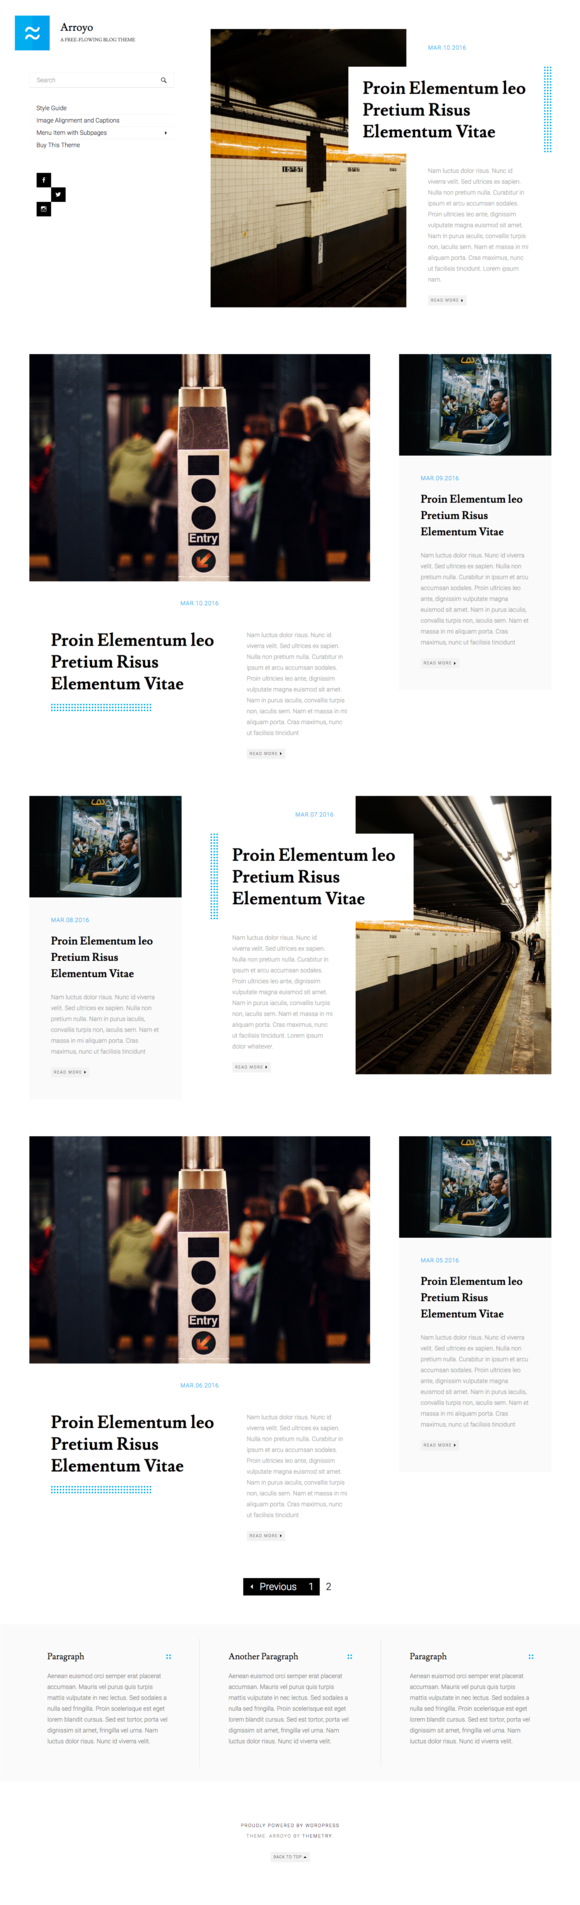 Arroyo: A Free-Flowing Blog Theme - Blog